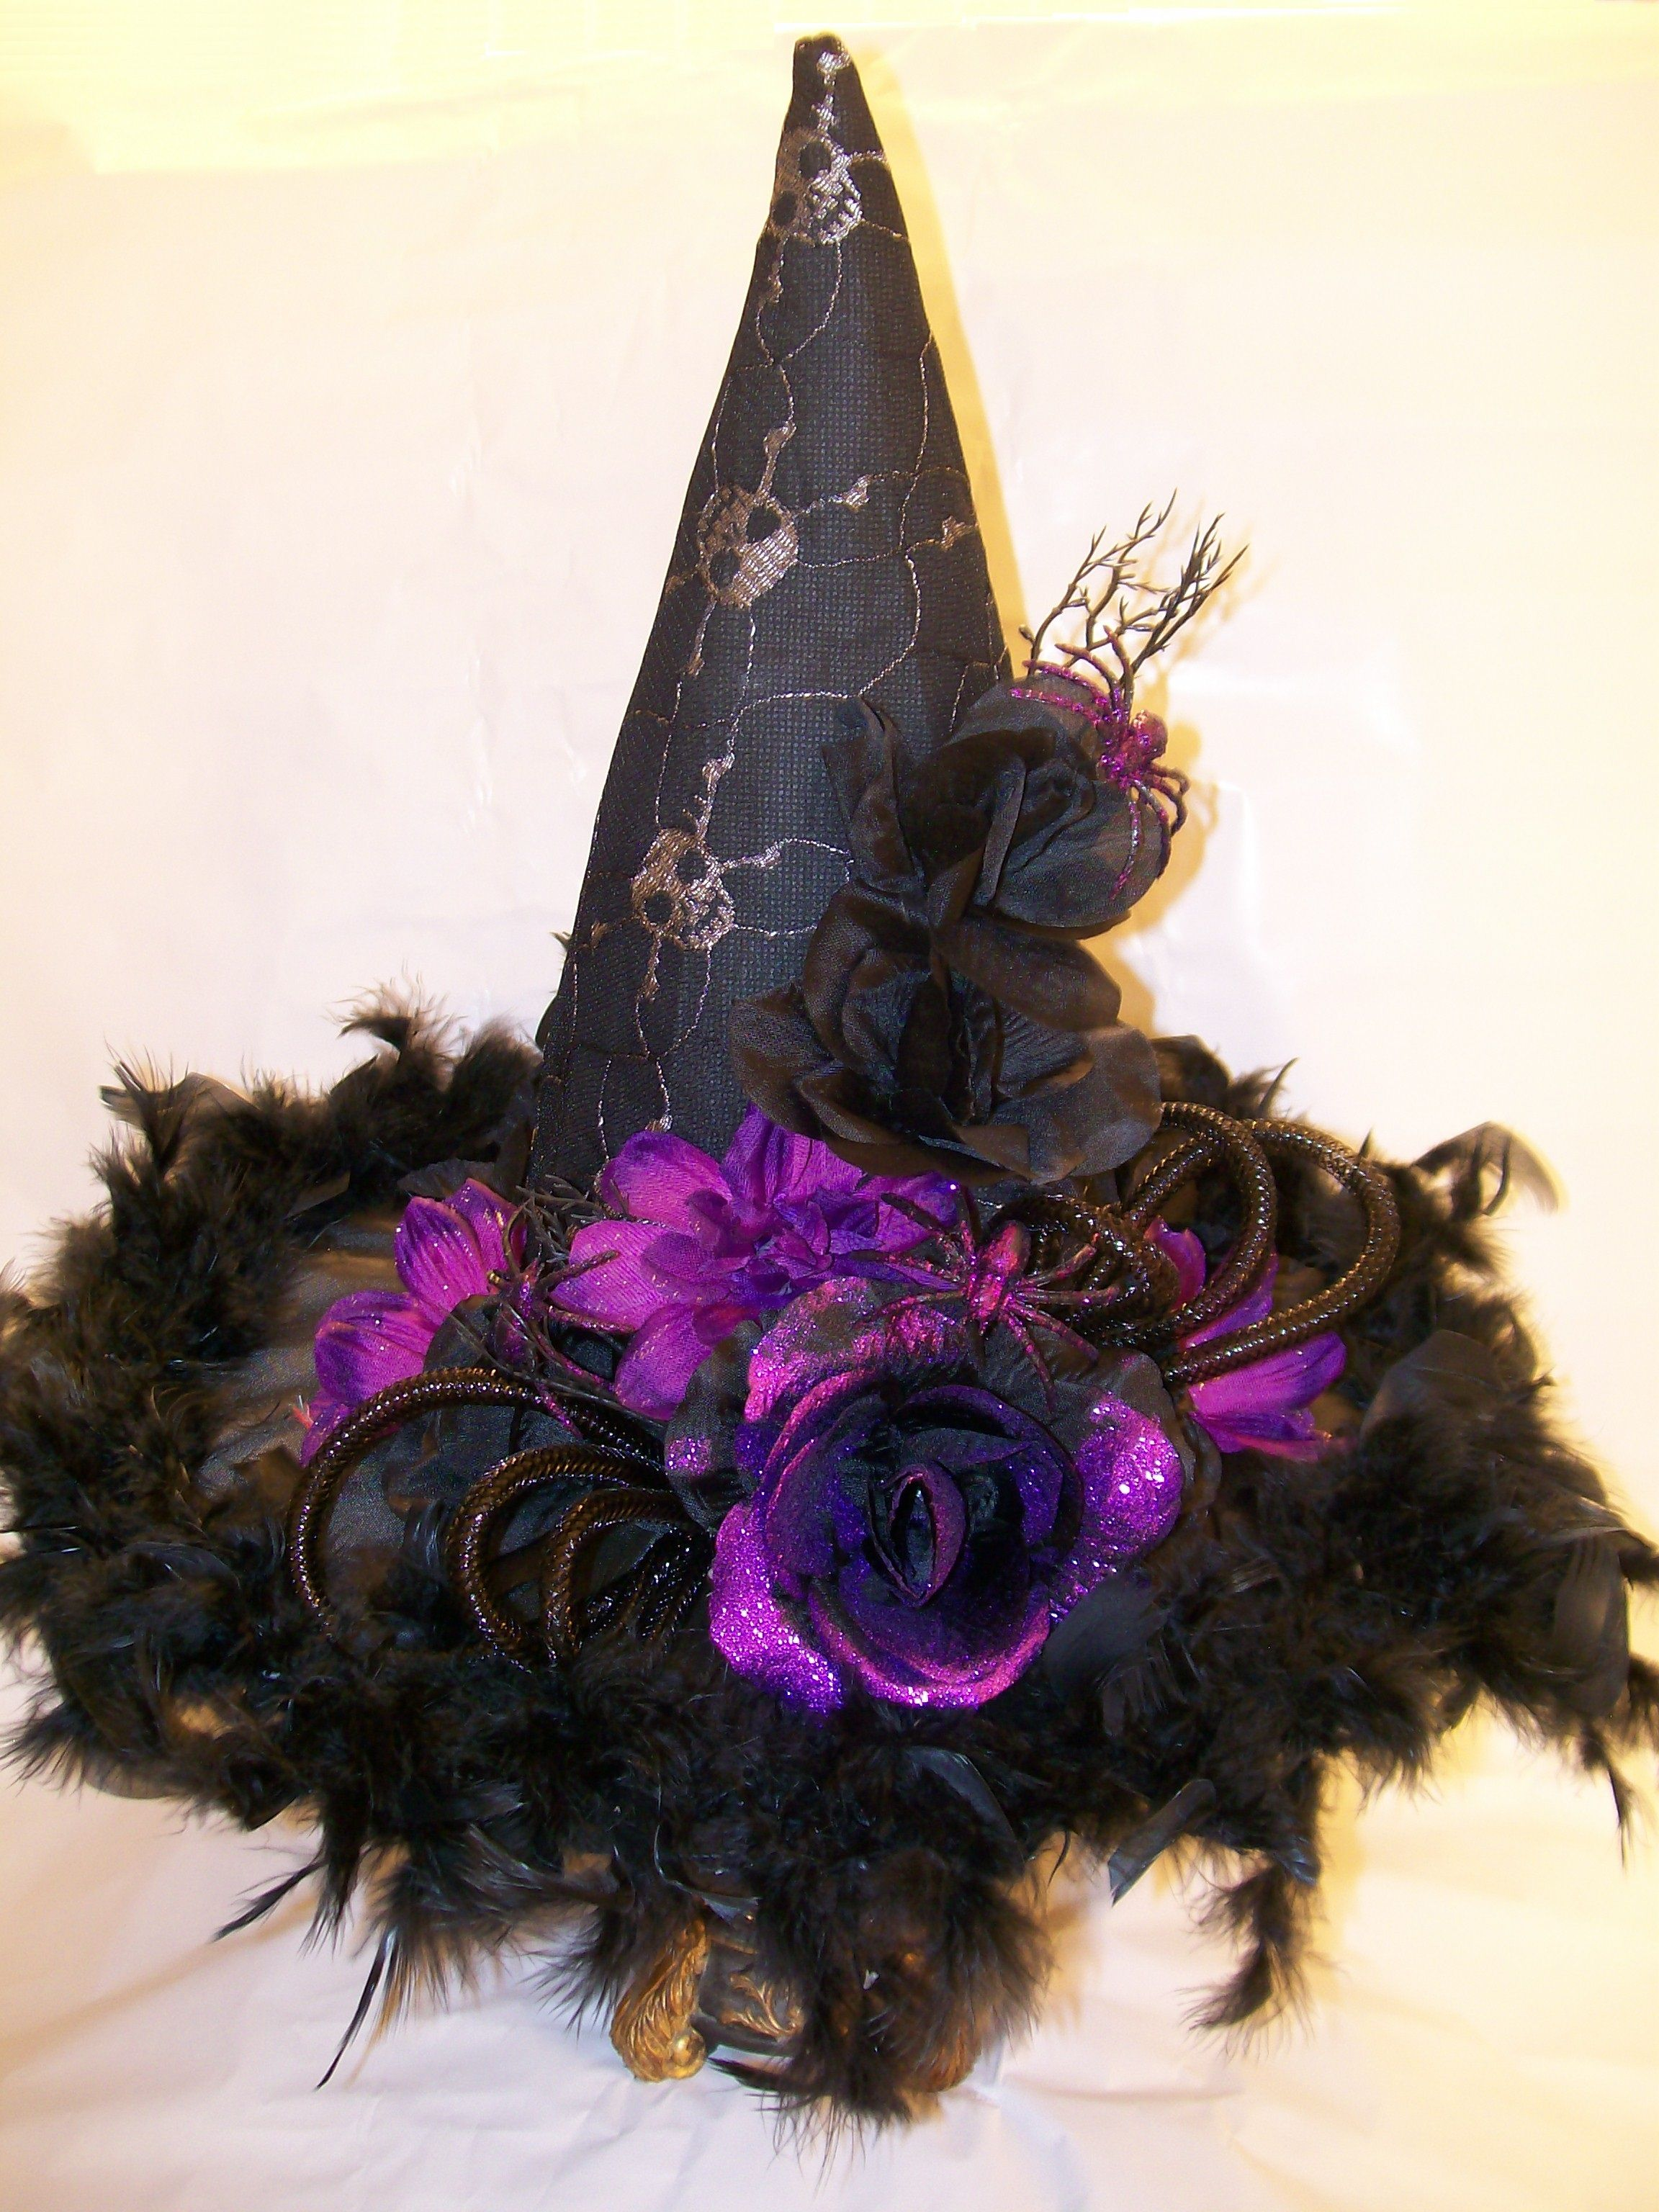 Halloween Witches Hat Material And Elements Purchased